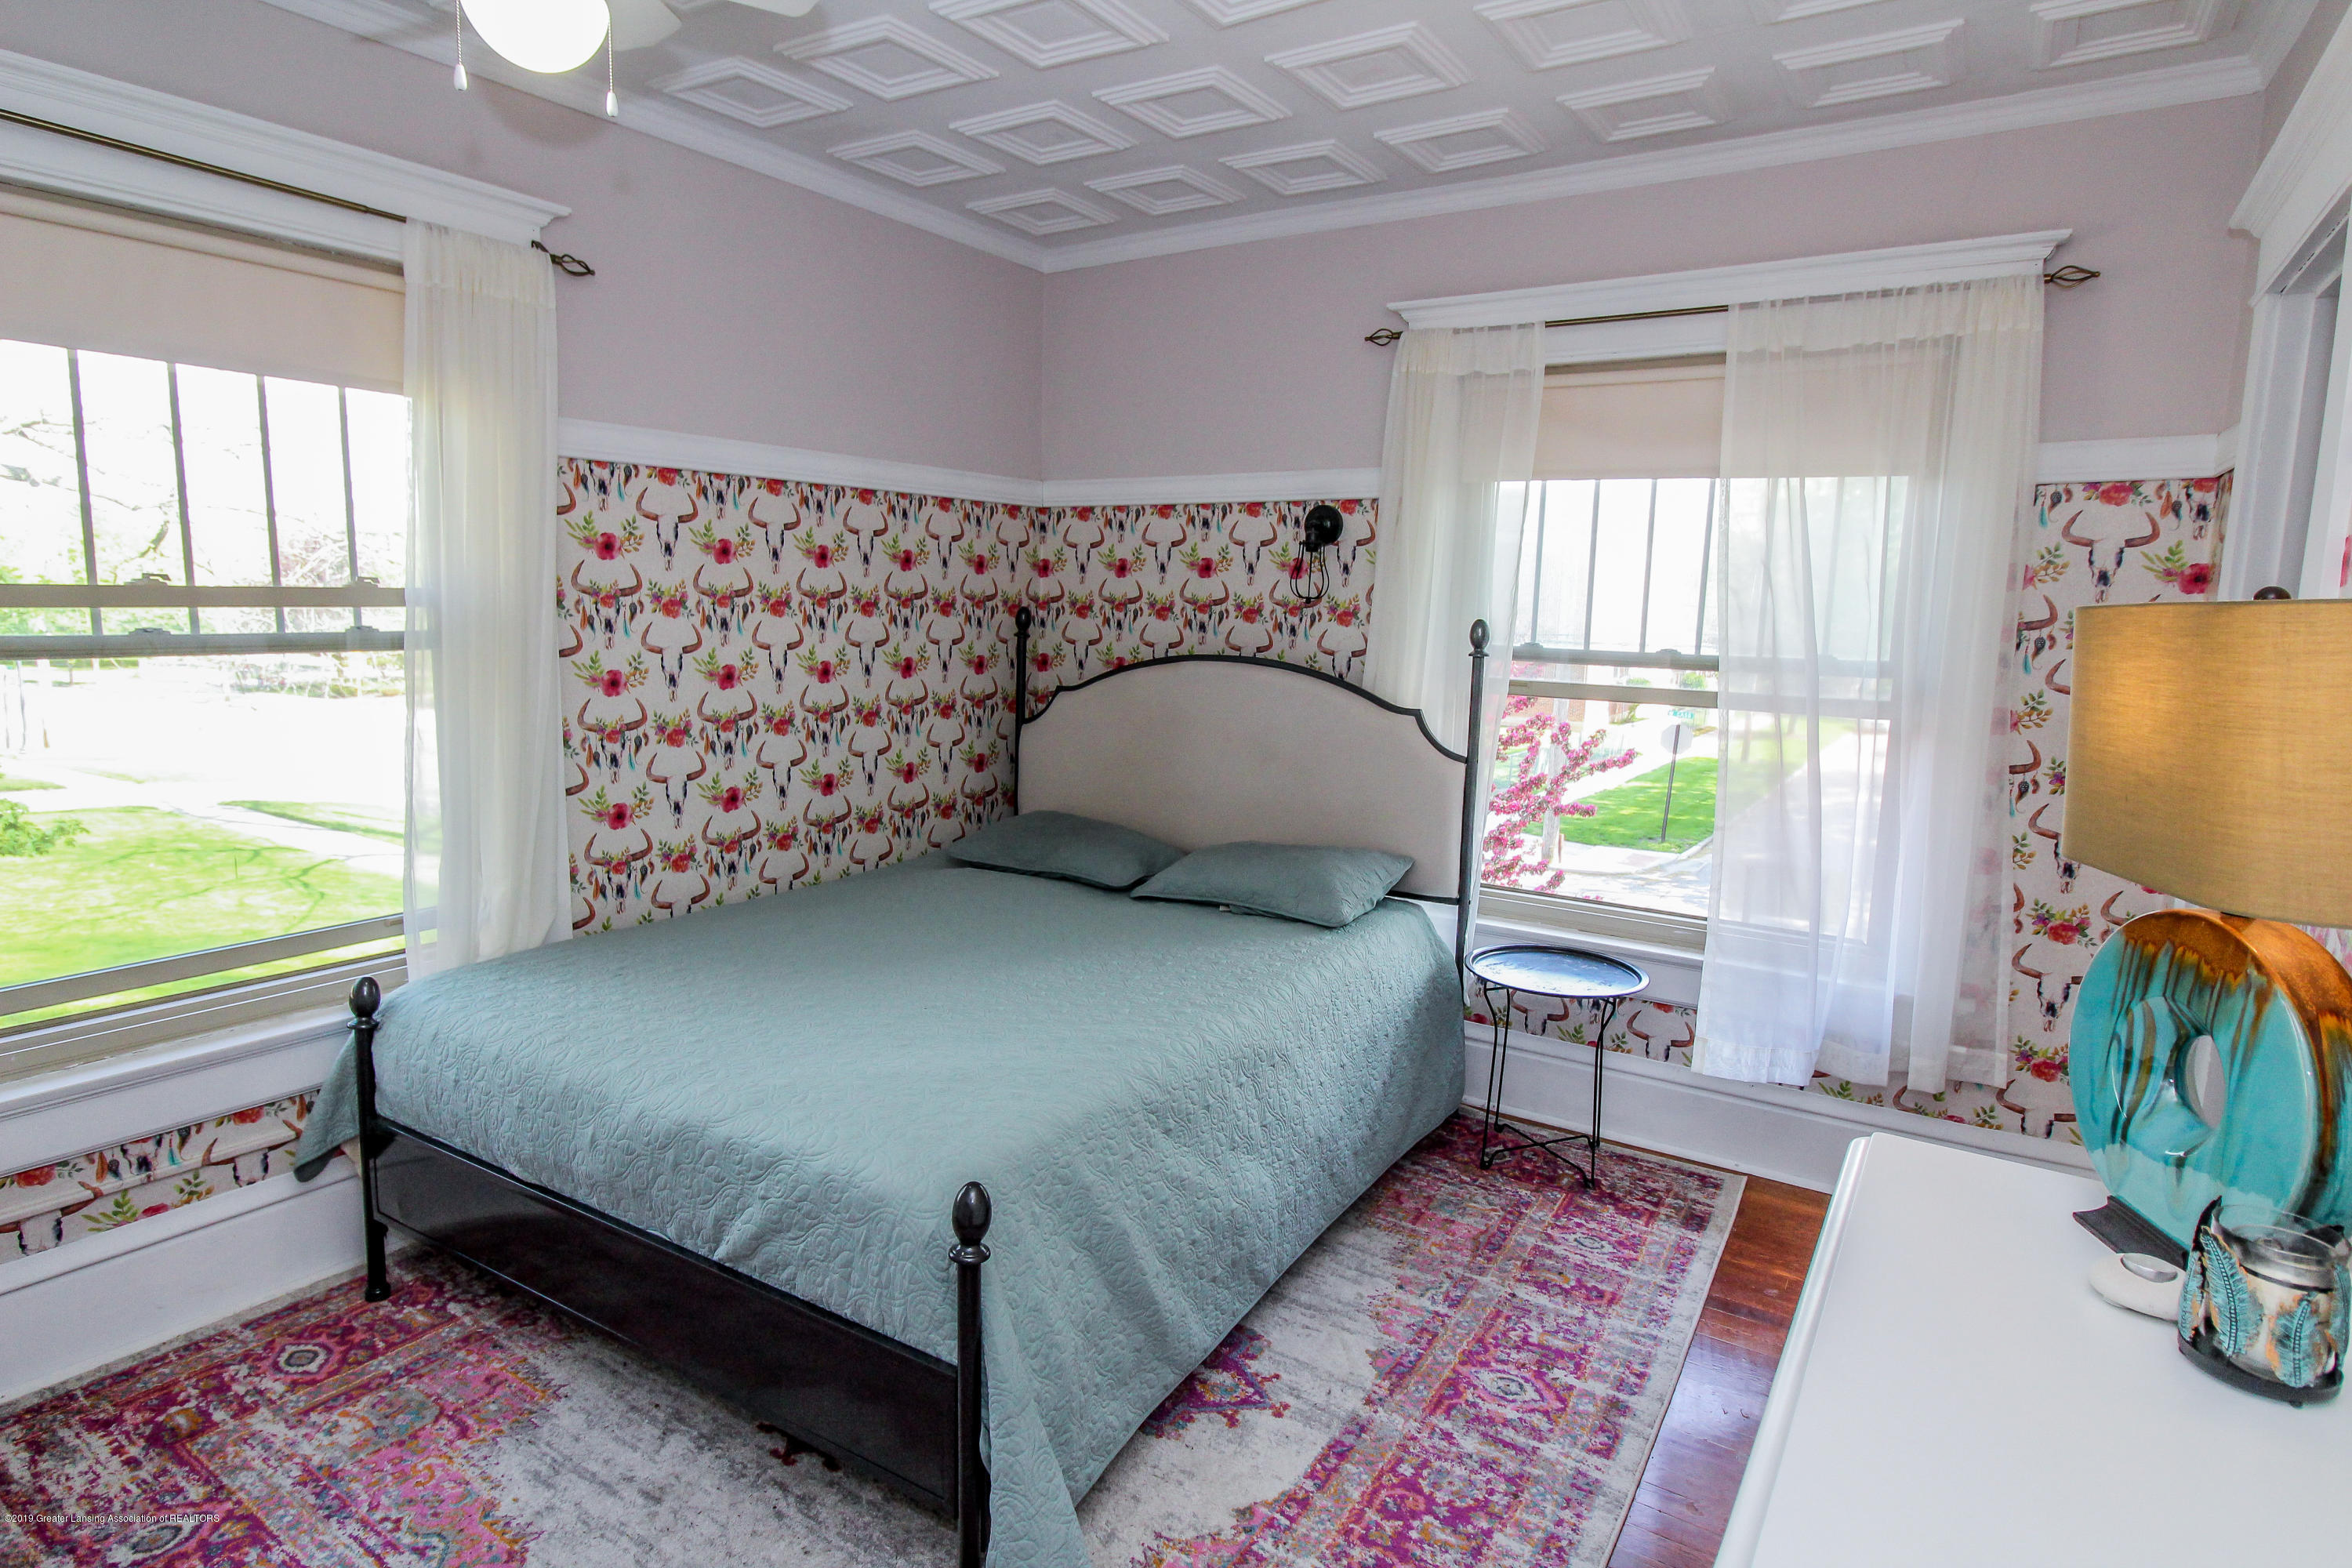 200 W Cass St - Bedroom - 46